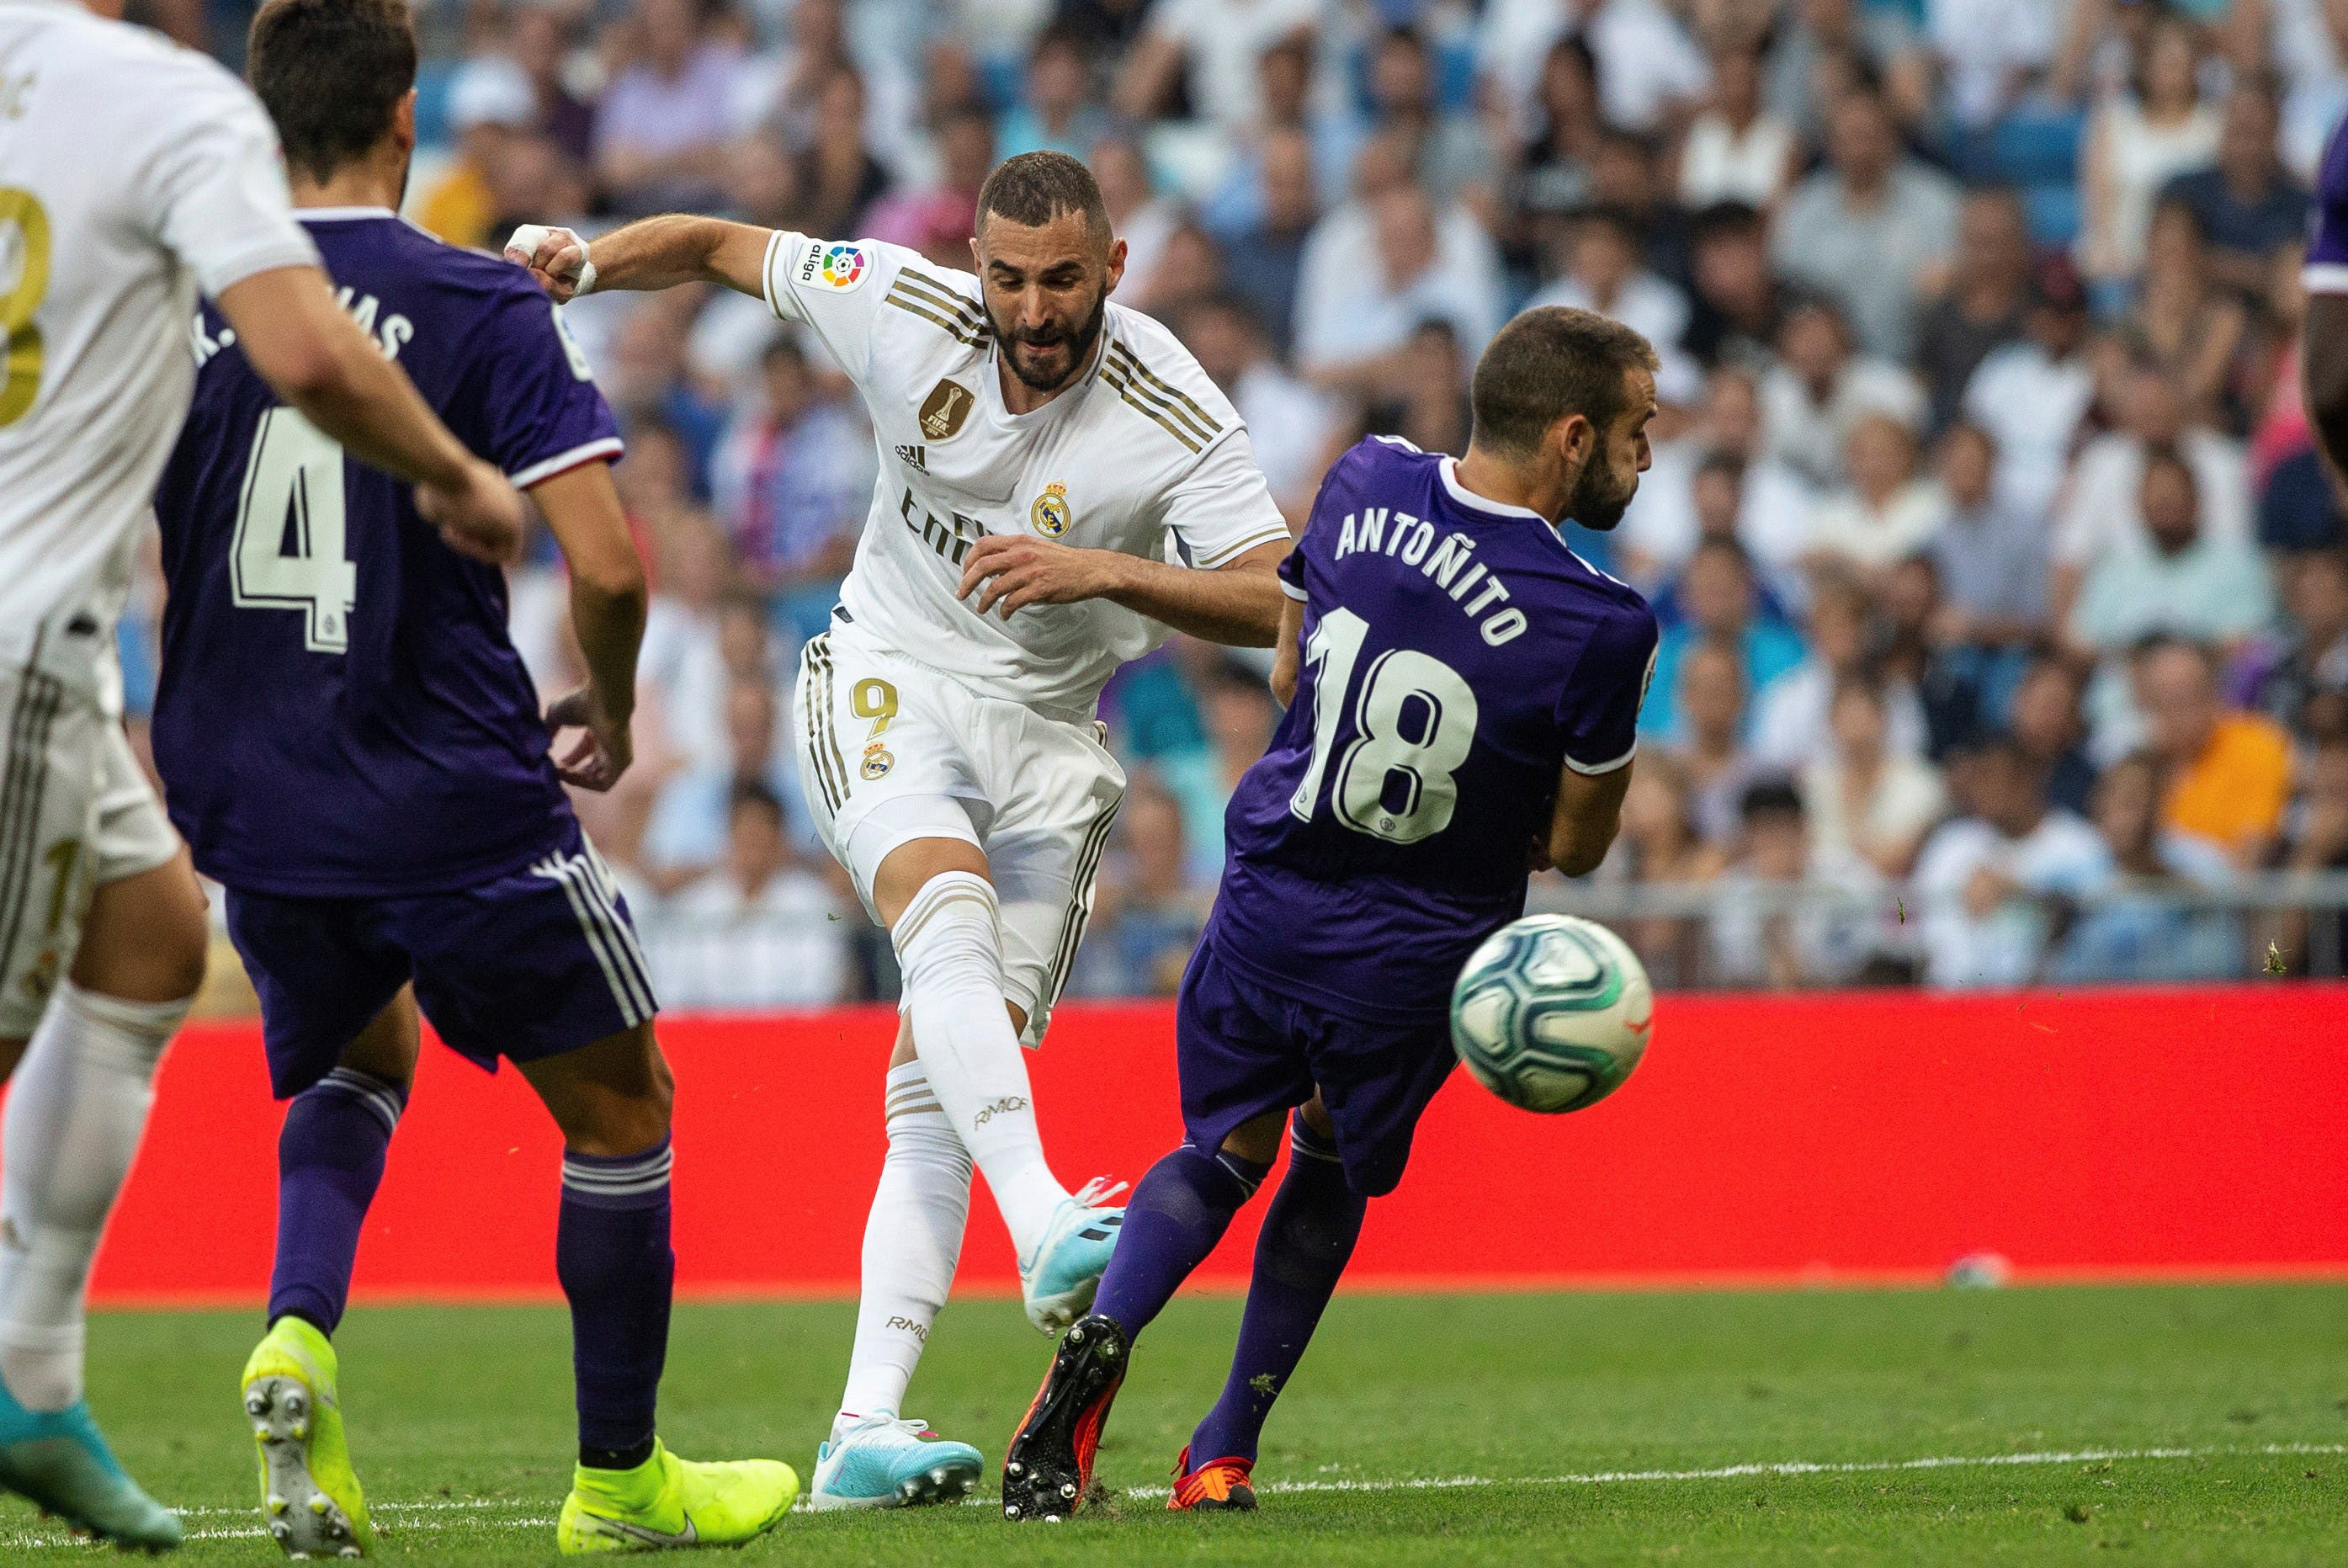 Samenvatting Real Madrid - Real Valladolid (La Liga)